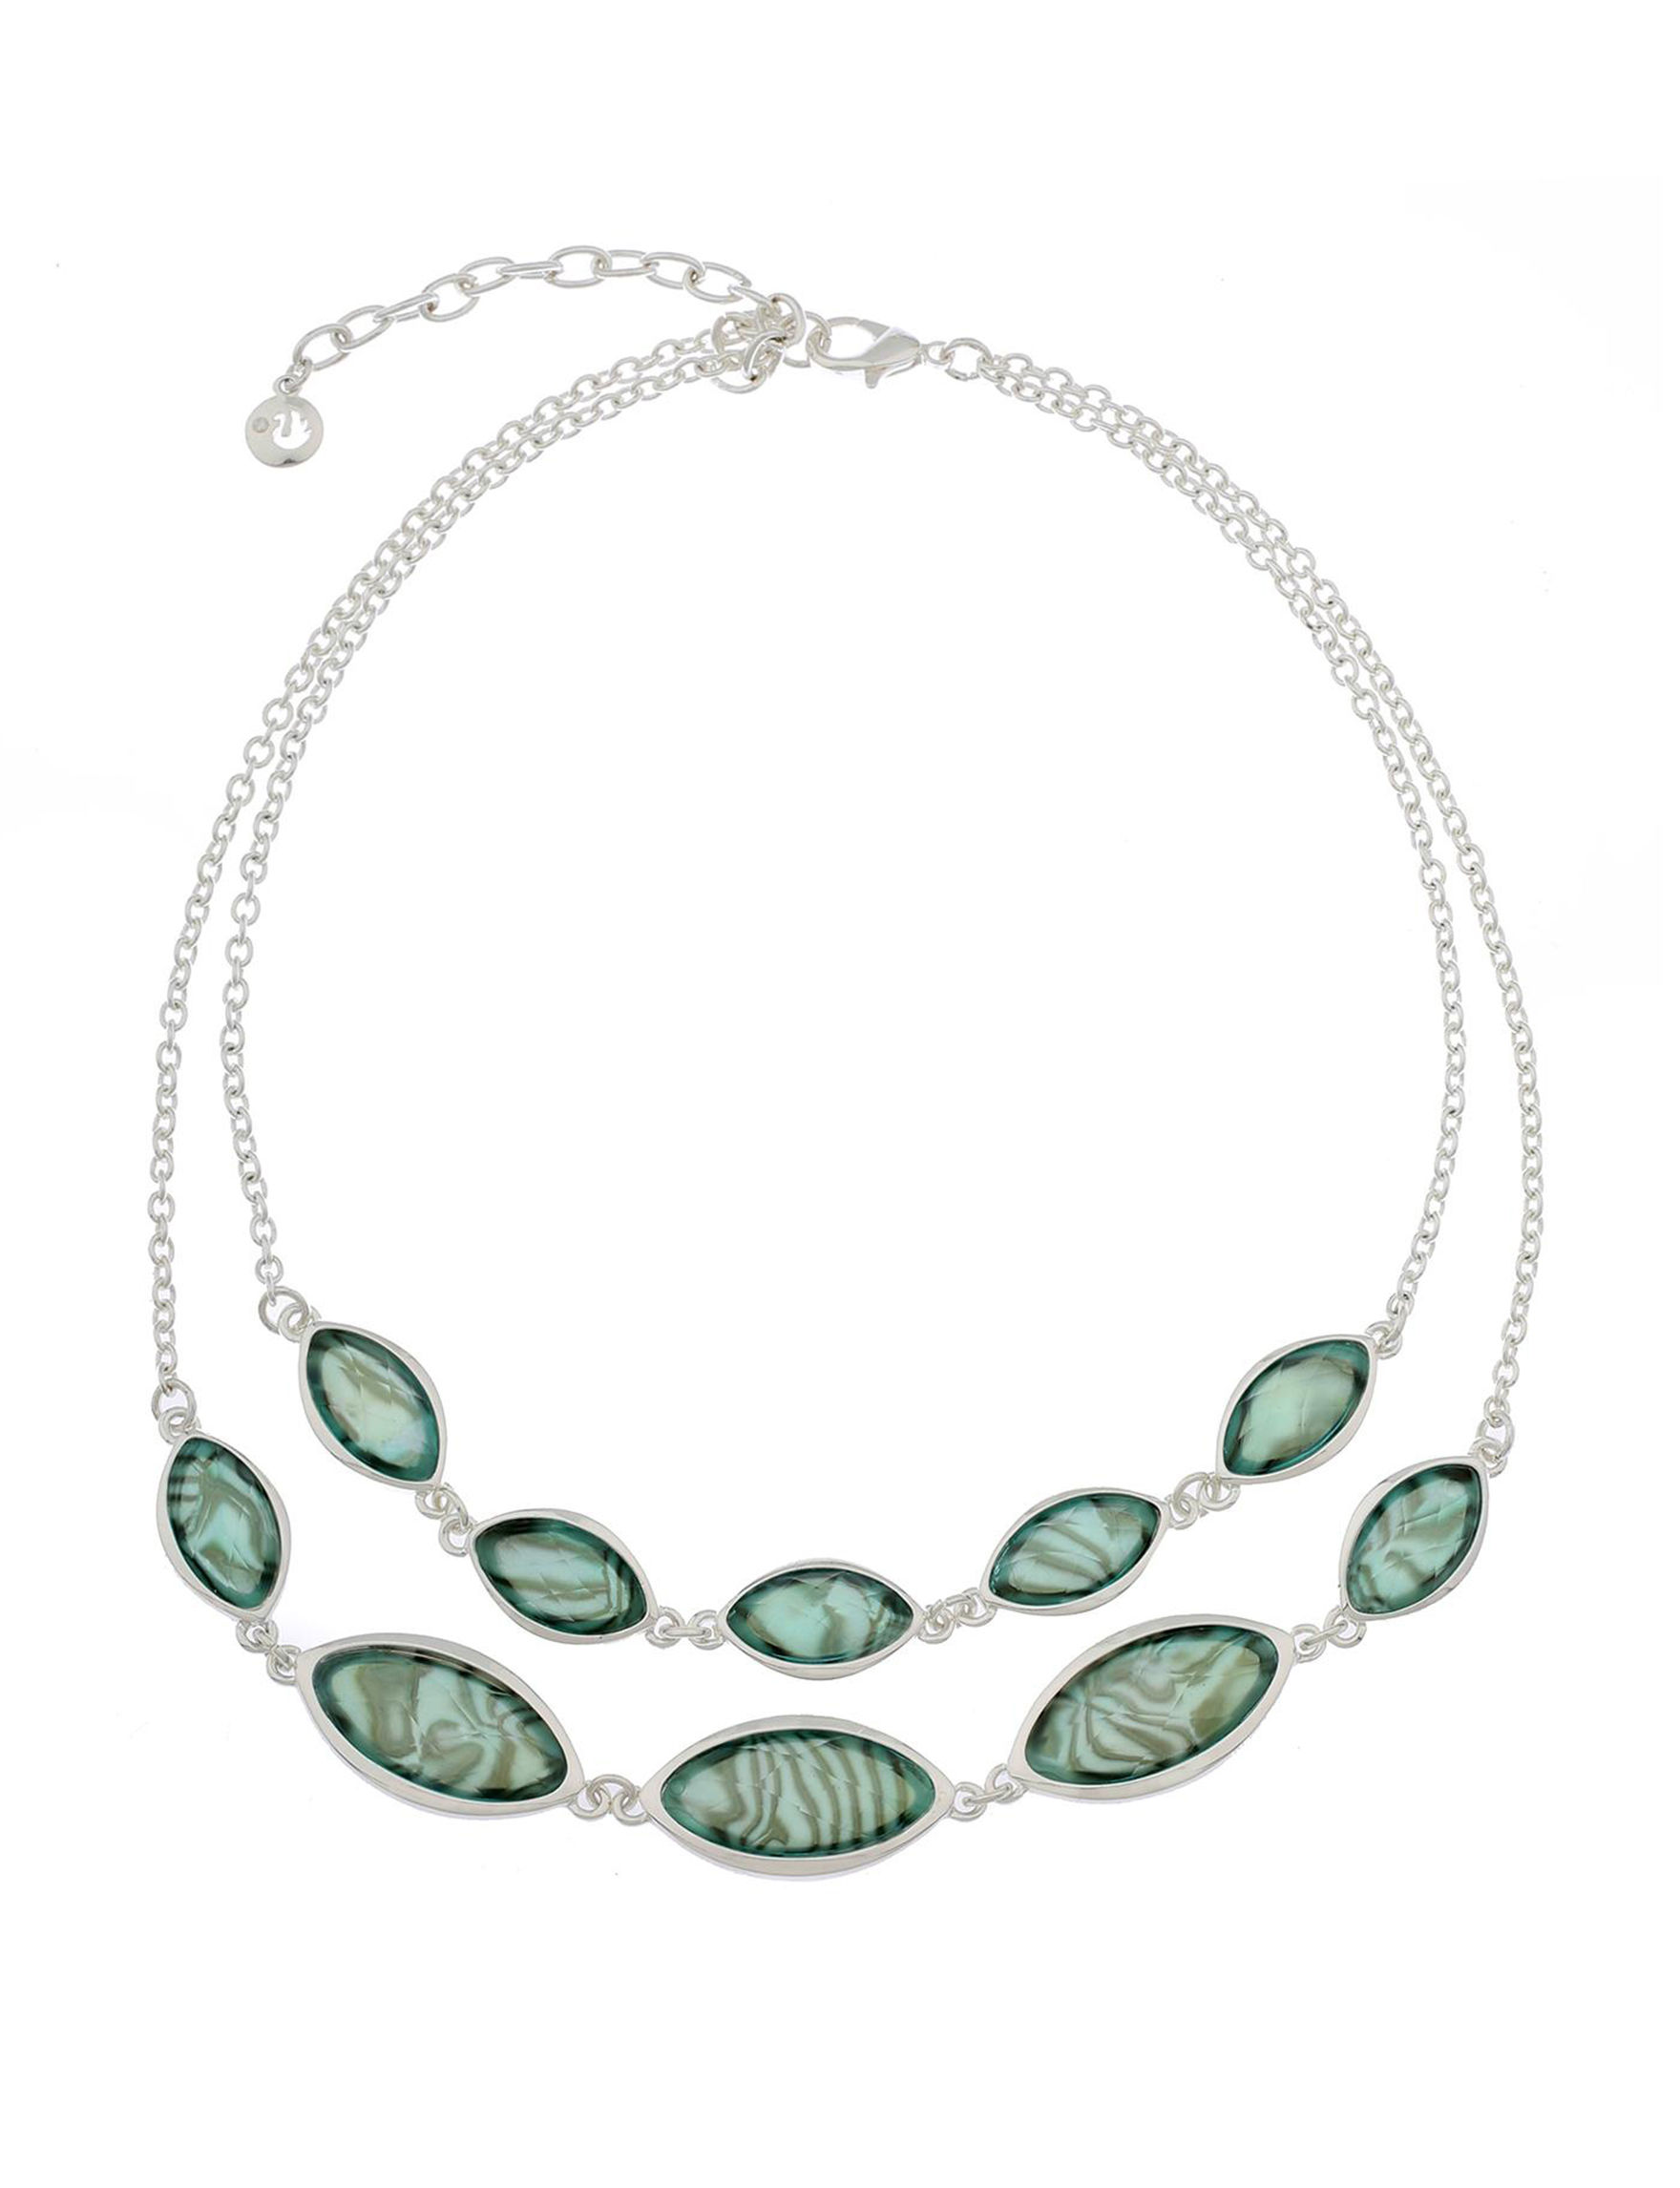 Gloria Vanderbilt Green / Silver Necklaces & Pendants Fashion Jewelry